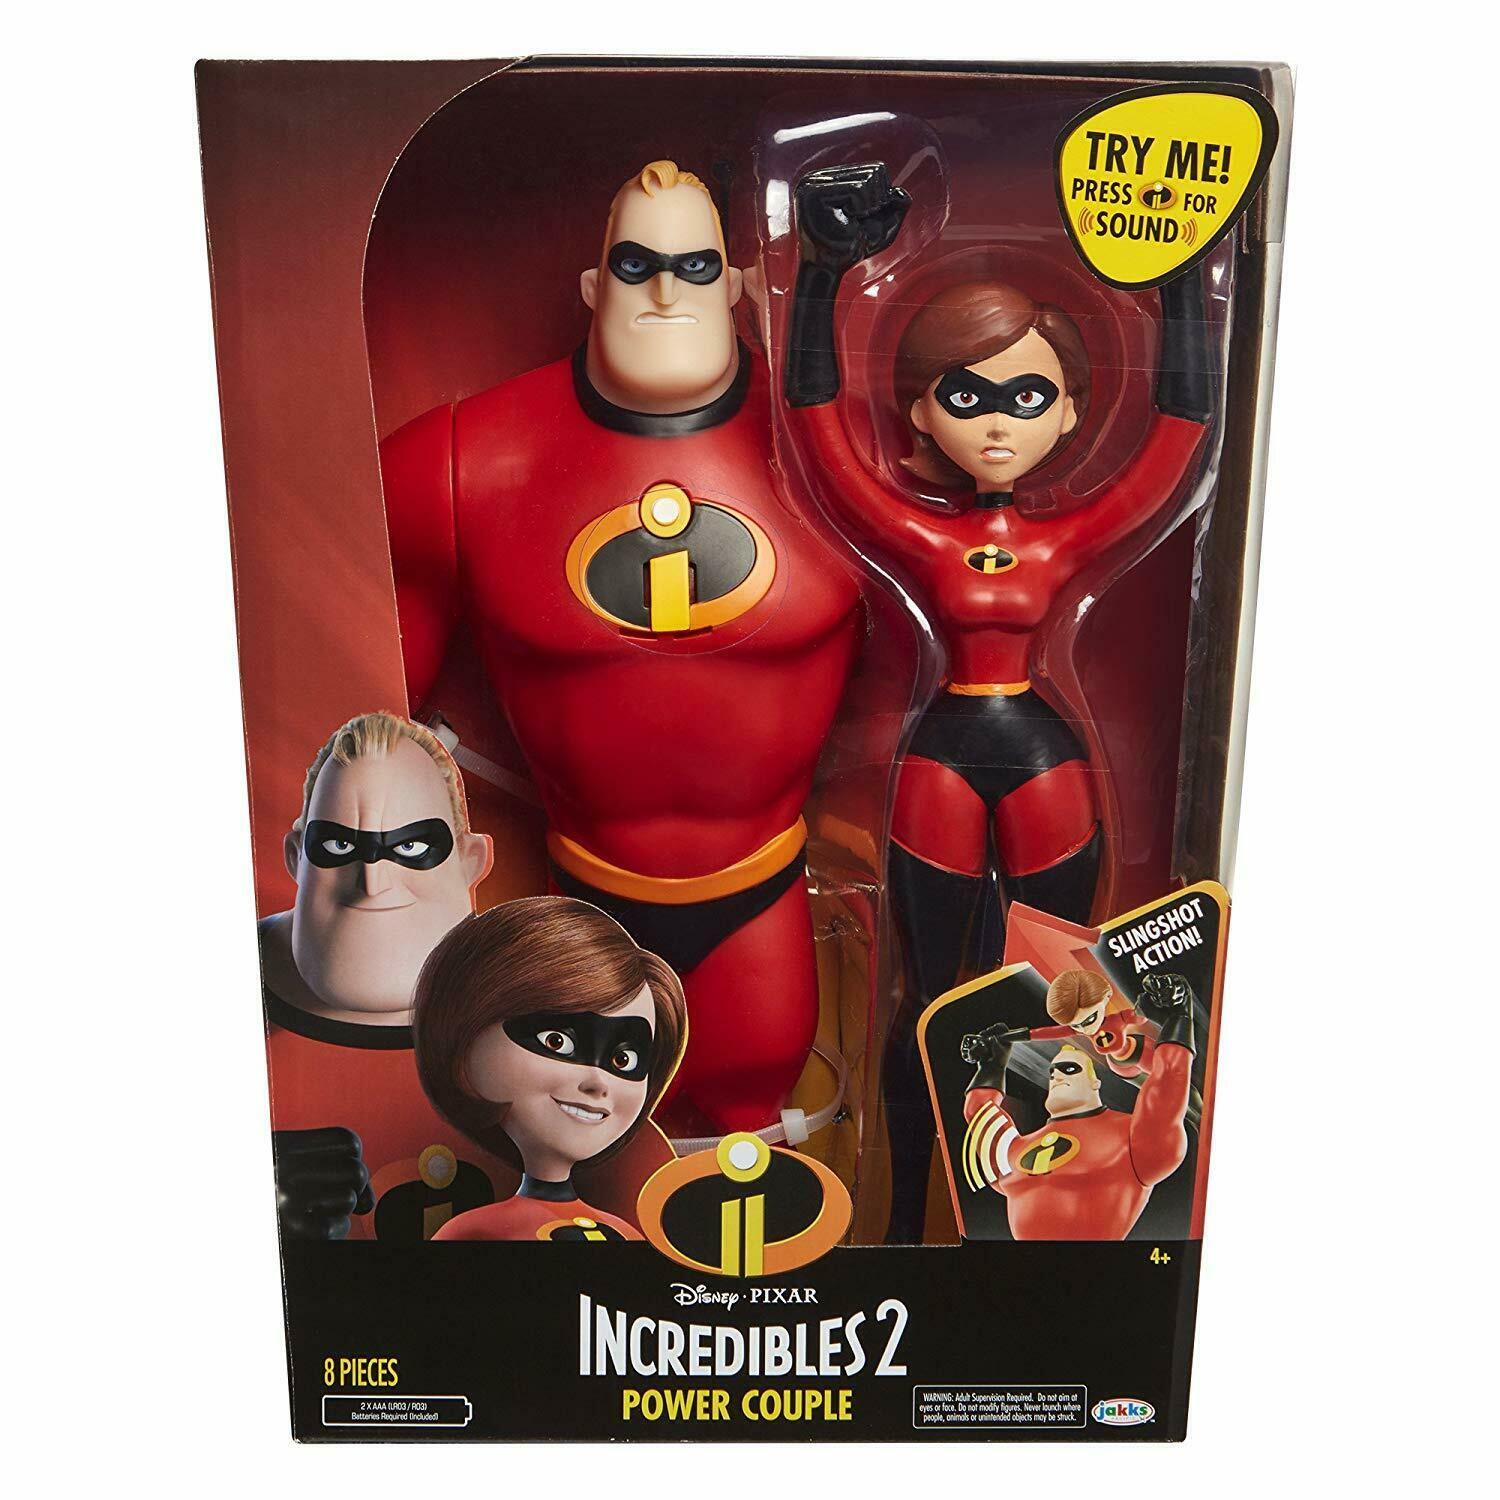 Incredibles 2 Power Couple Mr Incredible and Elastigirl Sling Shot 4+ Toy Doll